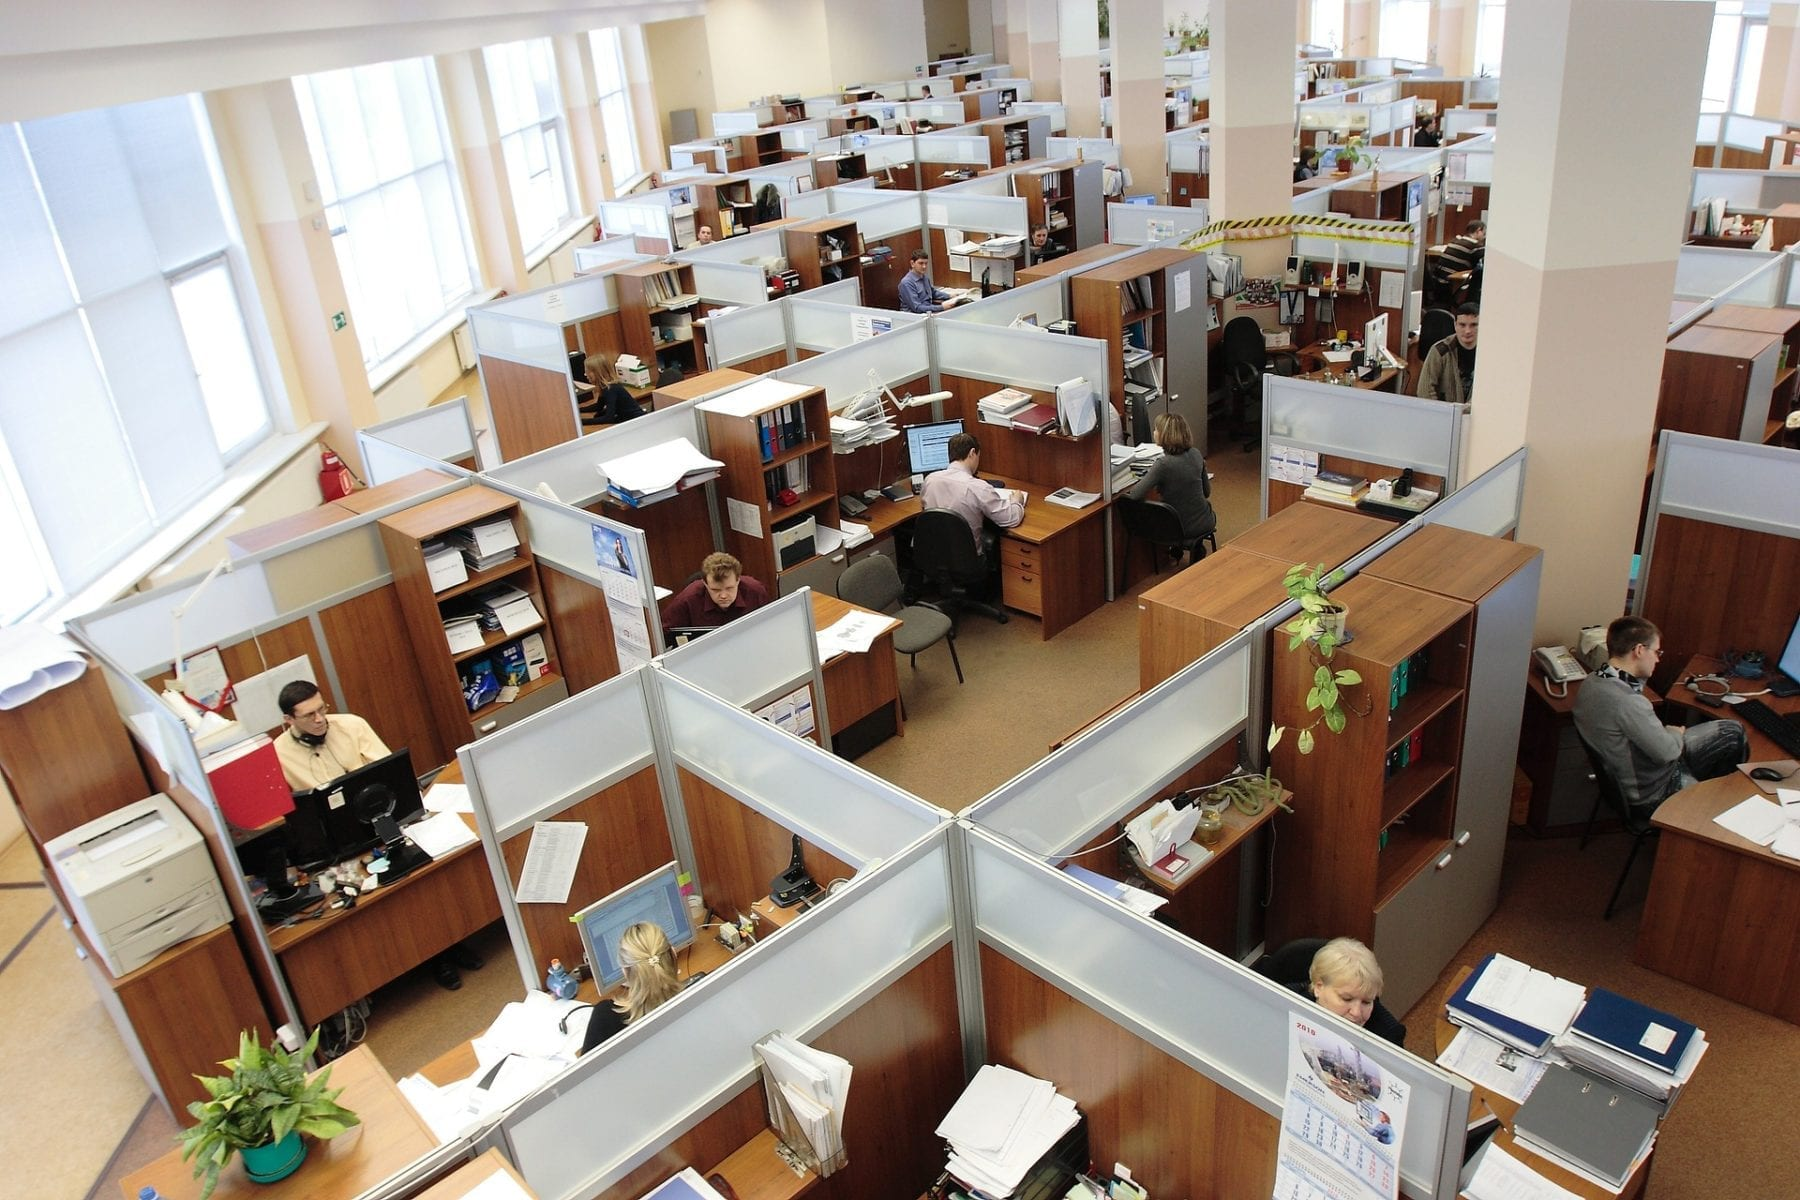 A shot of an office with cubicles.